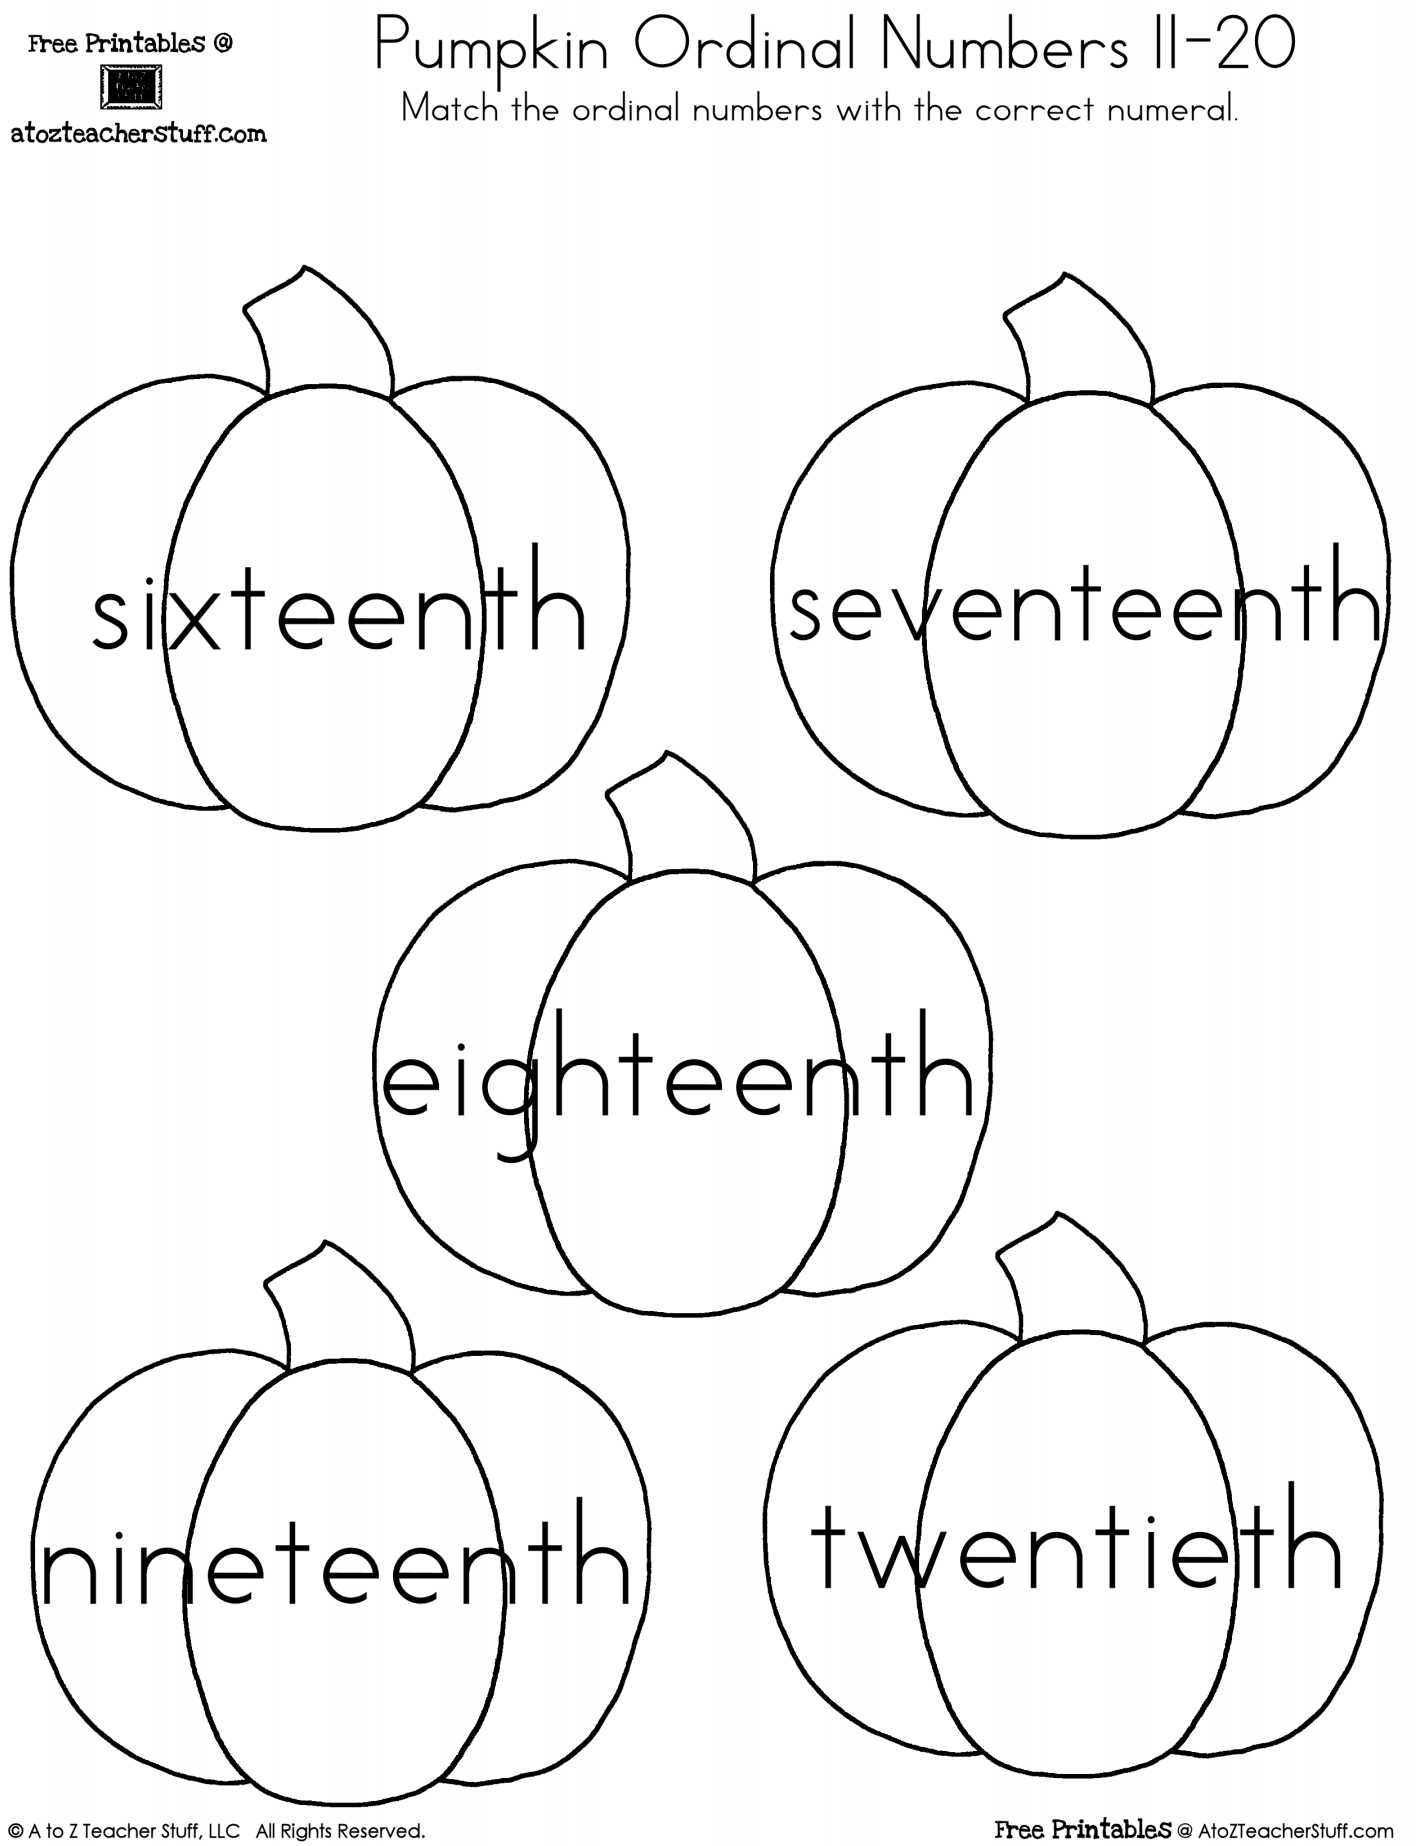 pumpkin-ordinal-numbers-teens